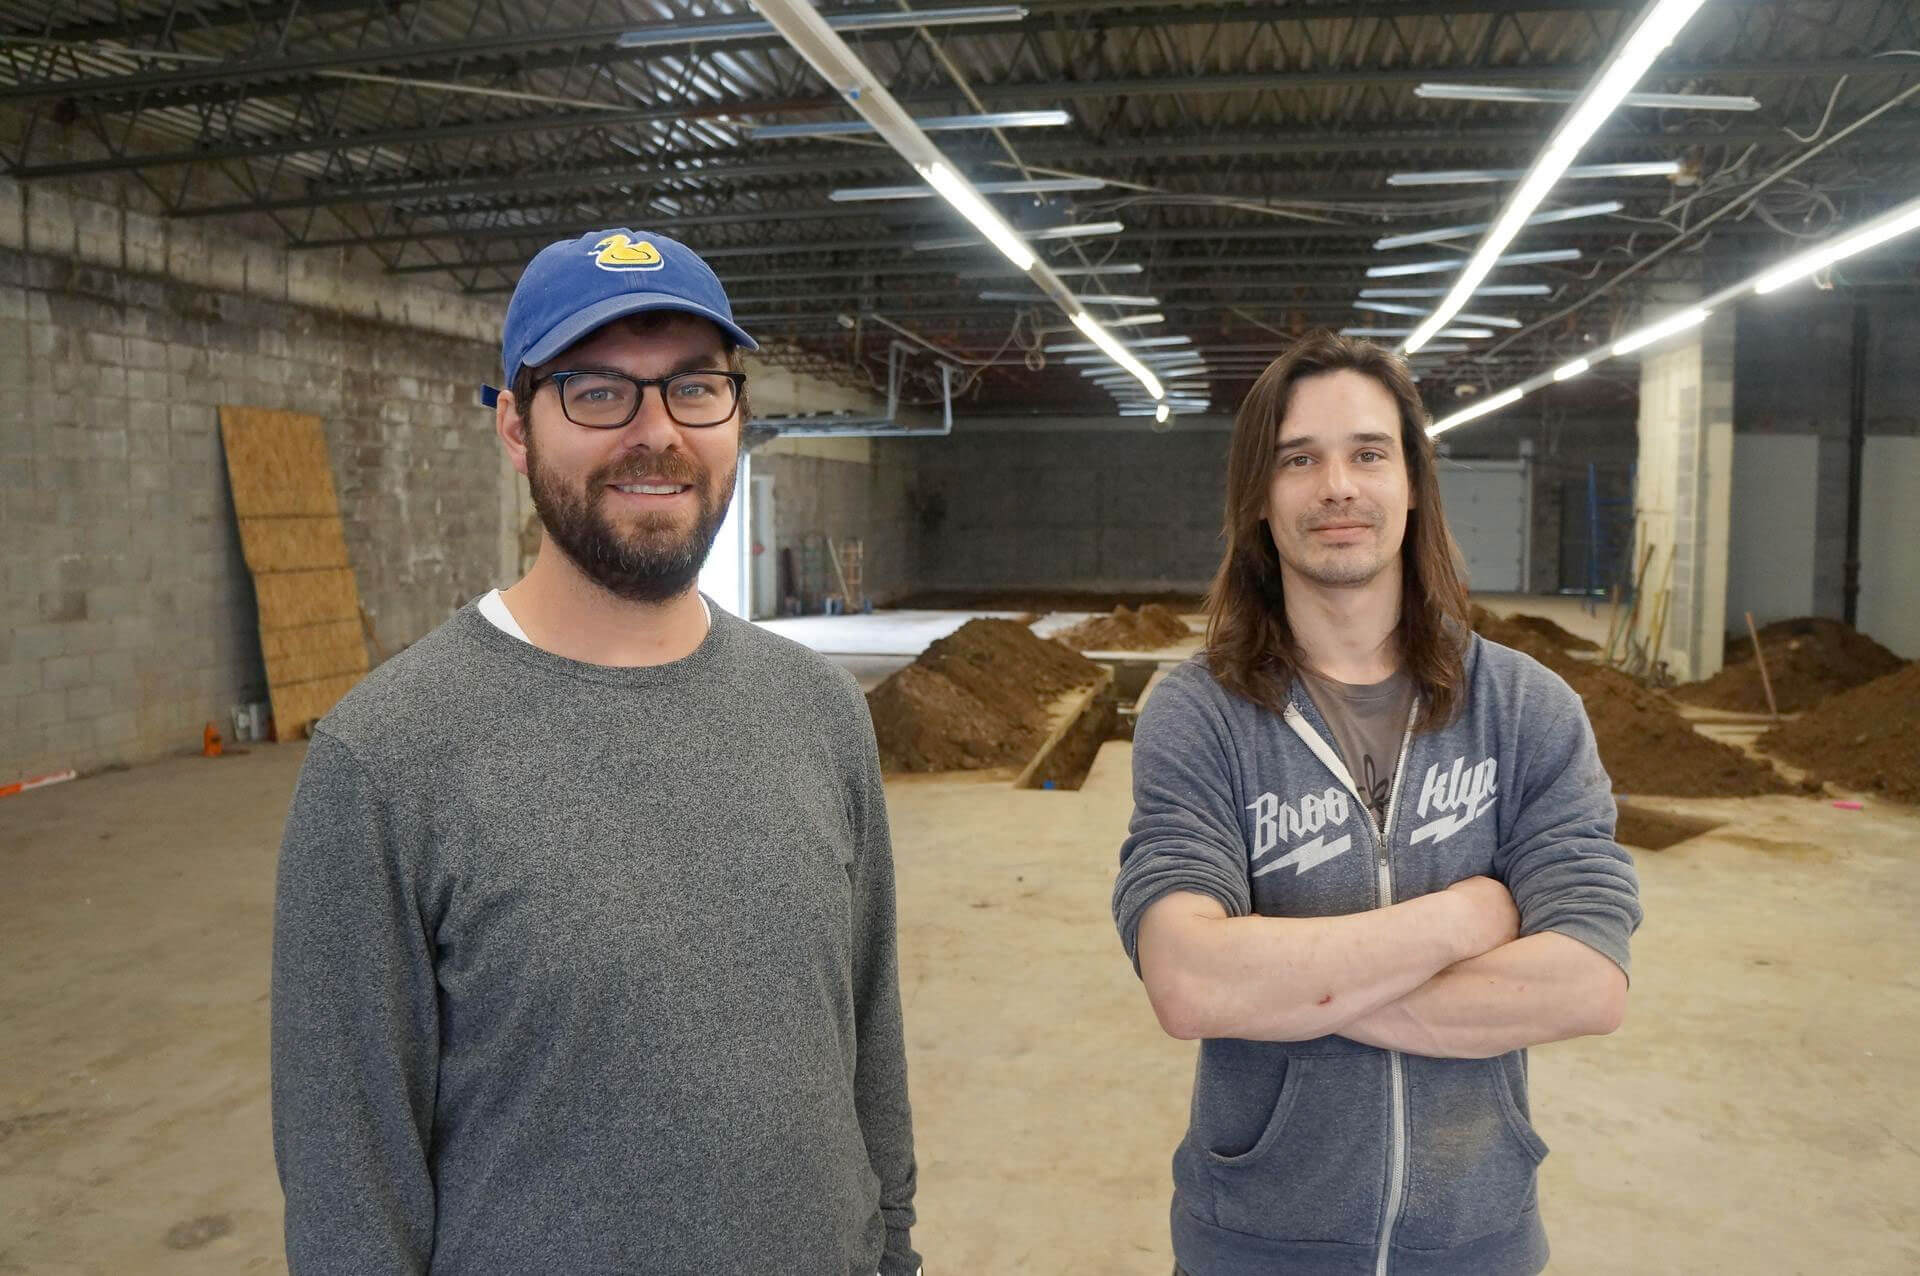 Brighten Brewing founders Elliott Pickett, left, and Tom Robbins stand inside their new brewery that's under construction on Cleveland Massillon Road in Copley Township. The brewery hopes to open in August. [Rick Armon/CantonRep.com]